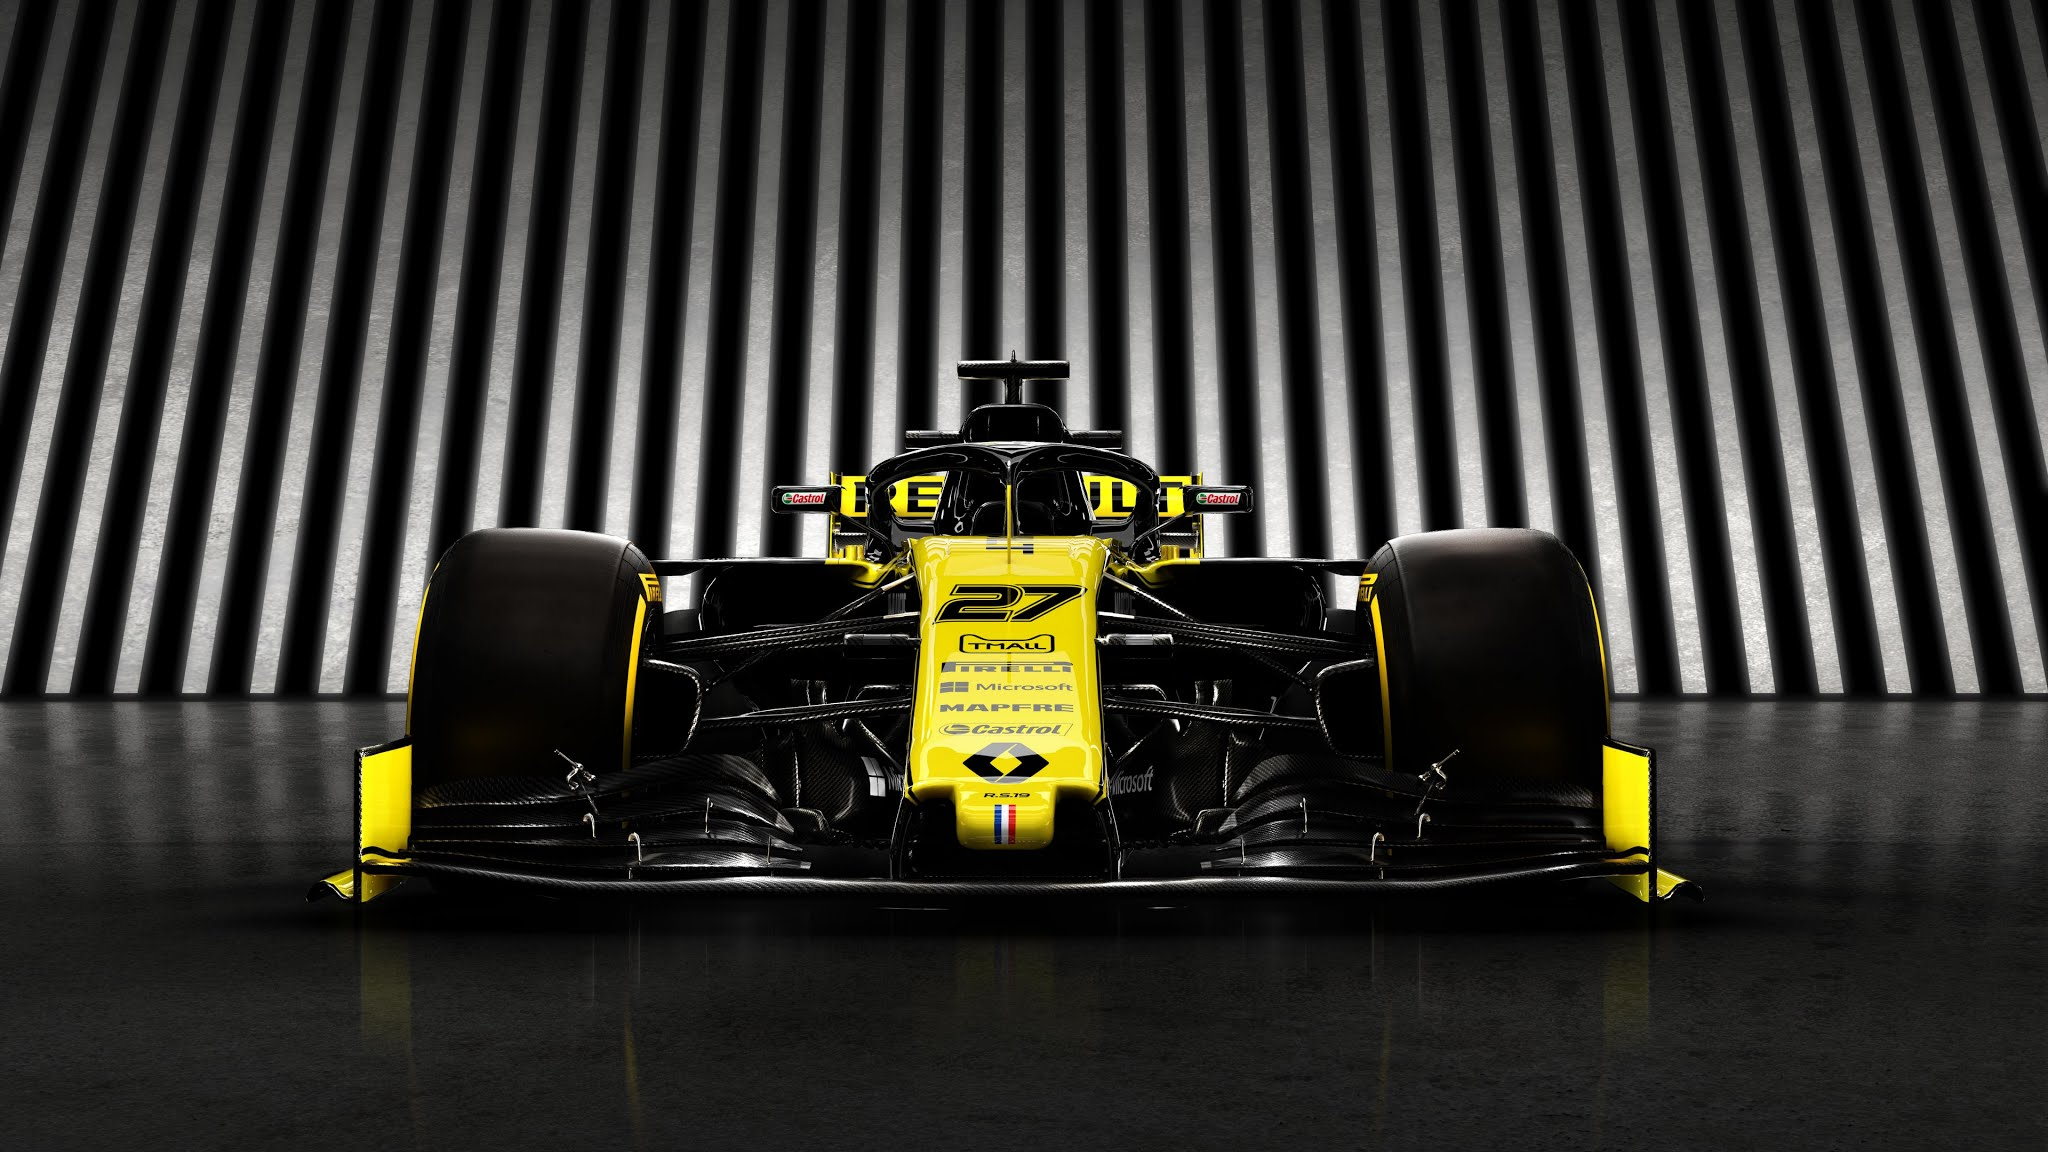 Renault RS 19 F1 2019 Wallpaper   XFXWallpapers   HD Wallpapers 2048x1152